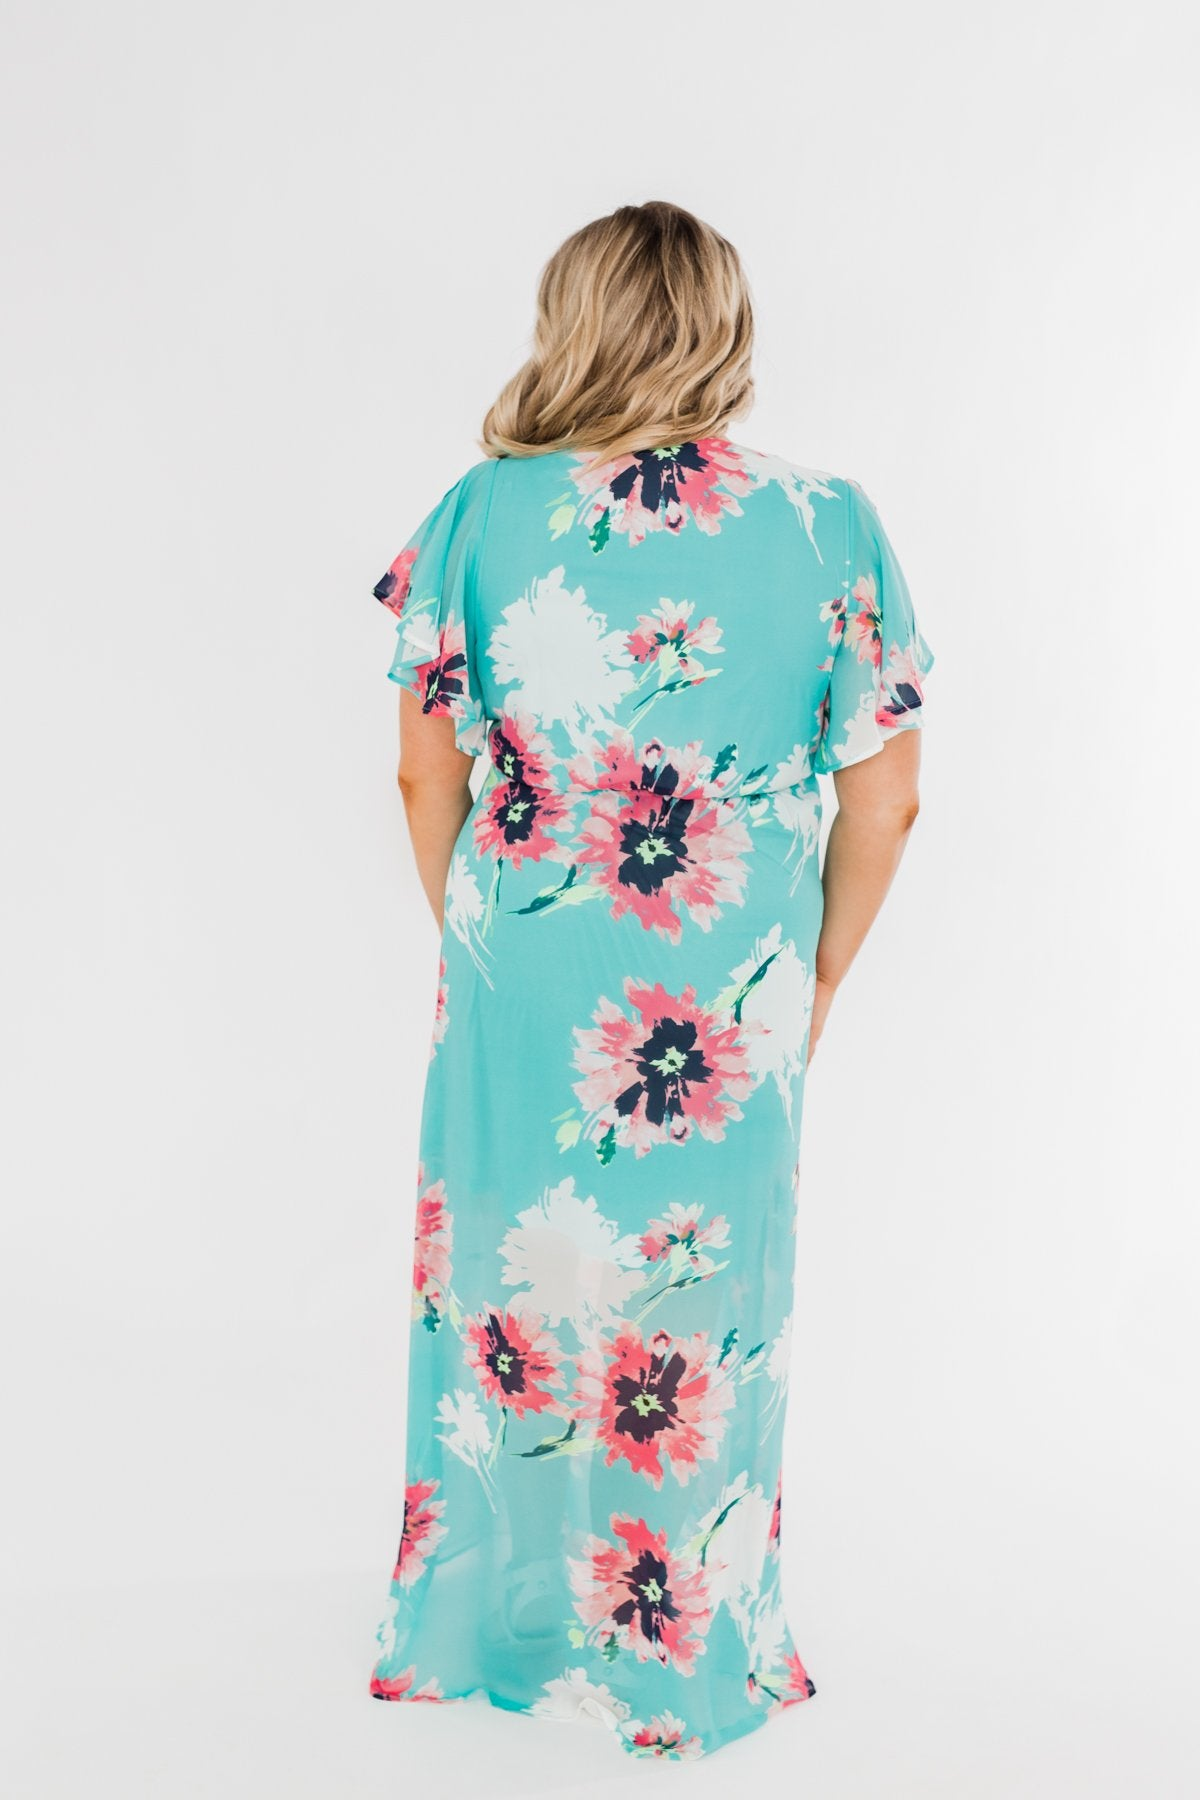 Inside The Dream Floral Maxi Dress- Mint